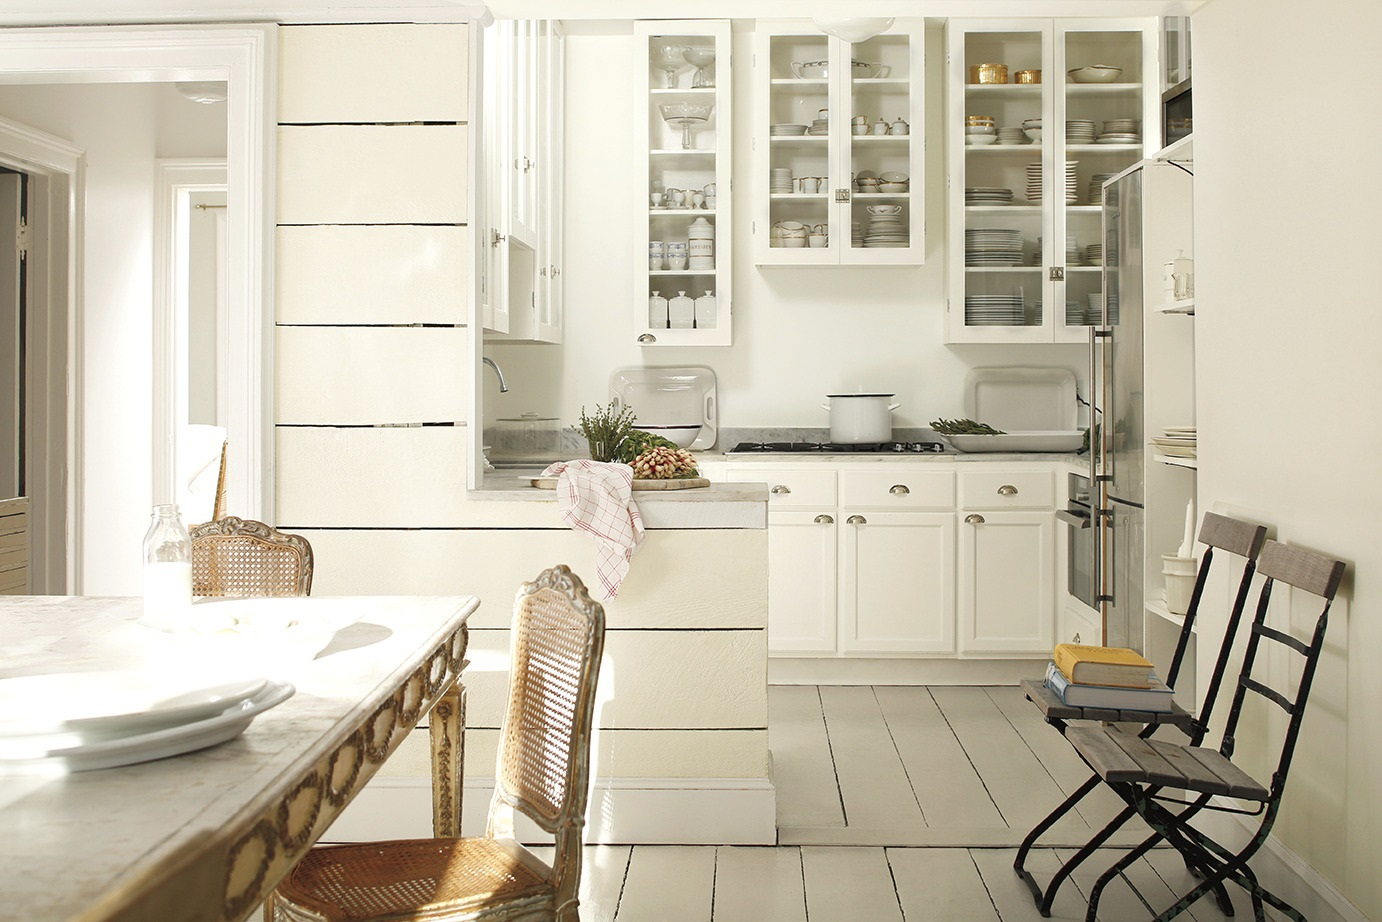 Home buyers love white kitchens, professional appliances and Carrera marble counters. Colors: Benjamin Moore. Walls: Mascarpone in Regal interior eggshell. Cabinets: Simply White in satin.  Photo Credit: Benjamin Moore.